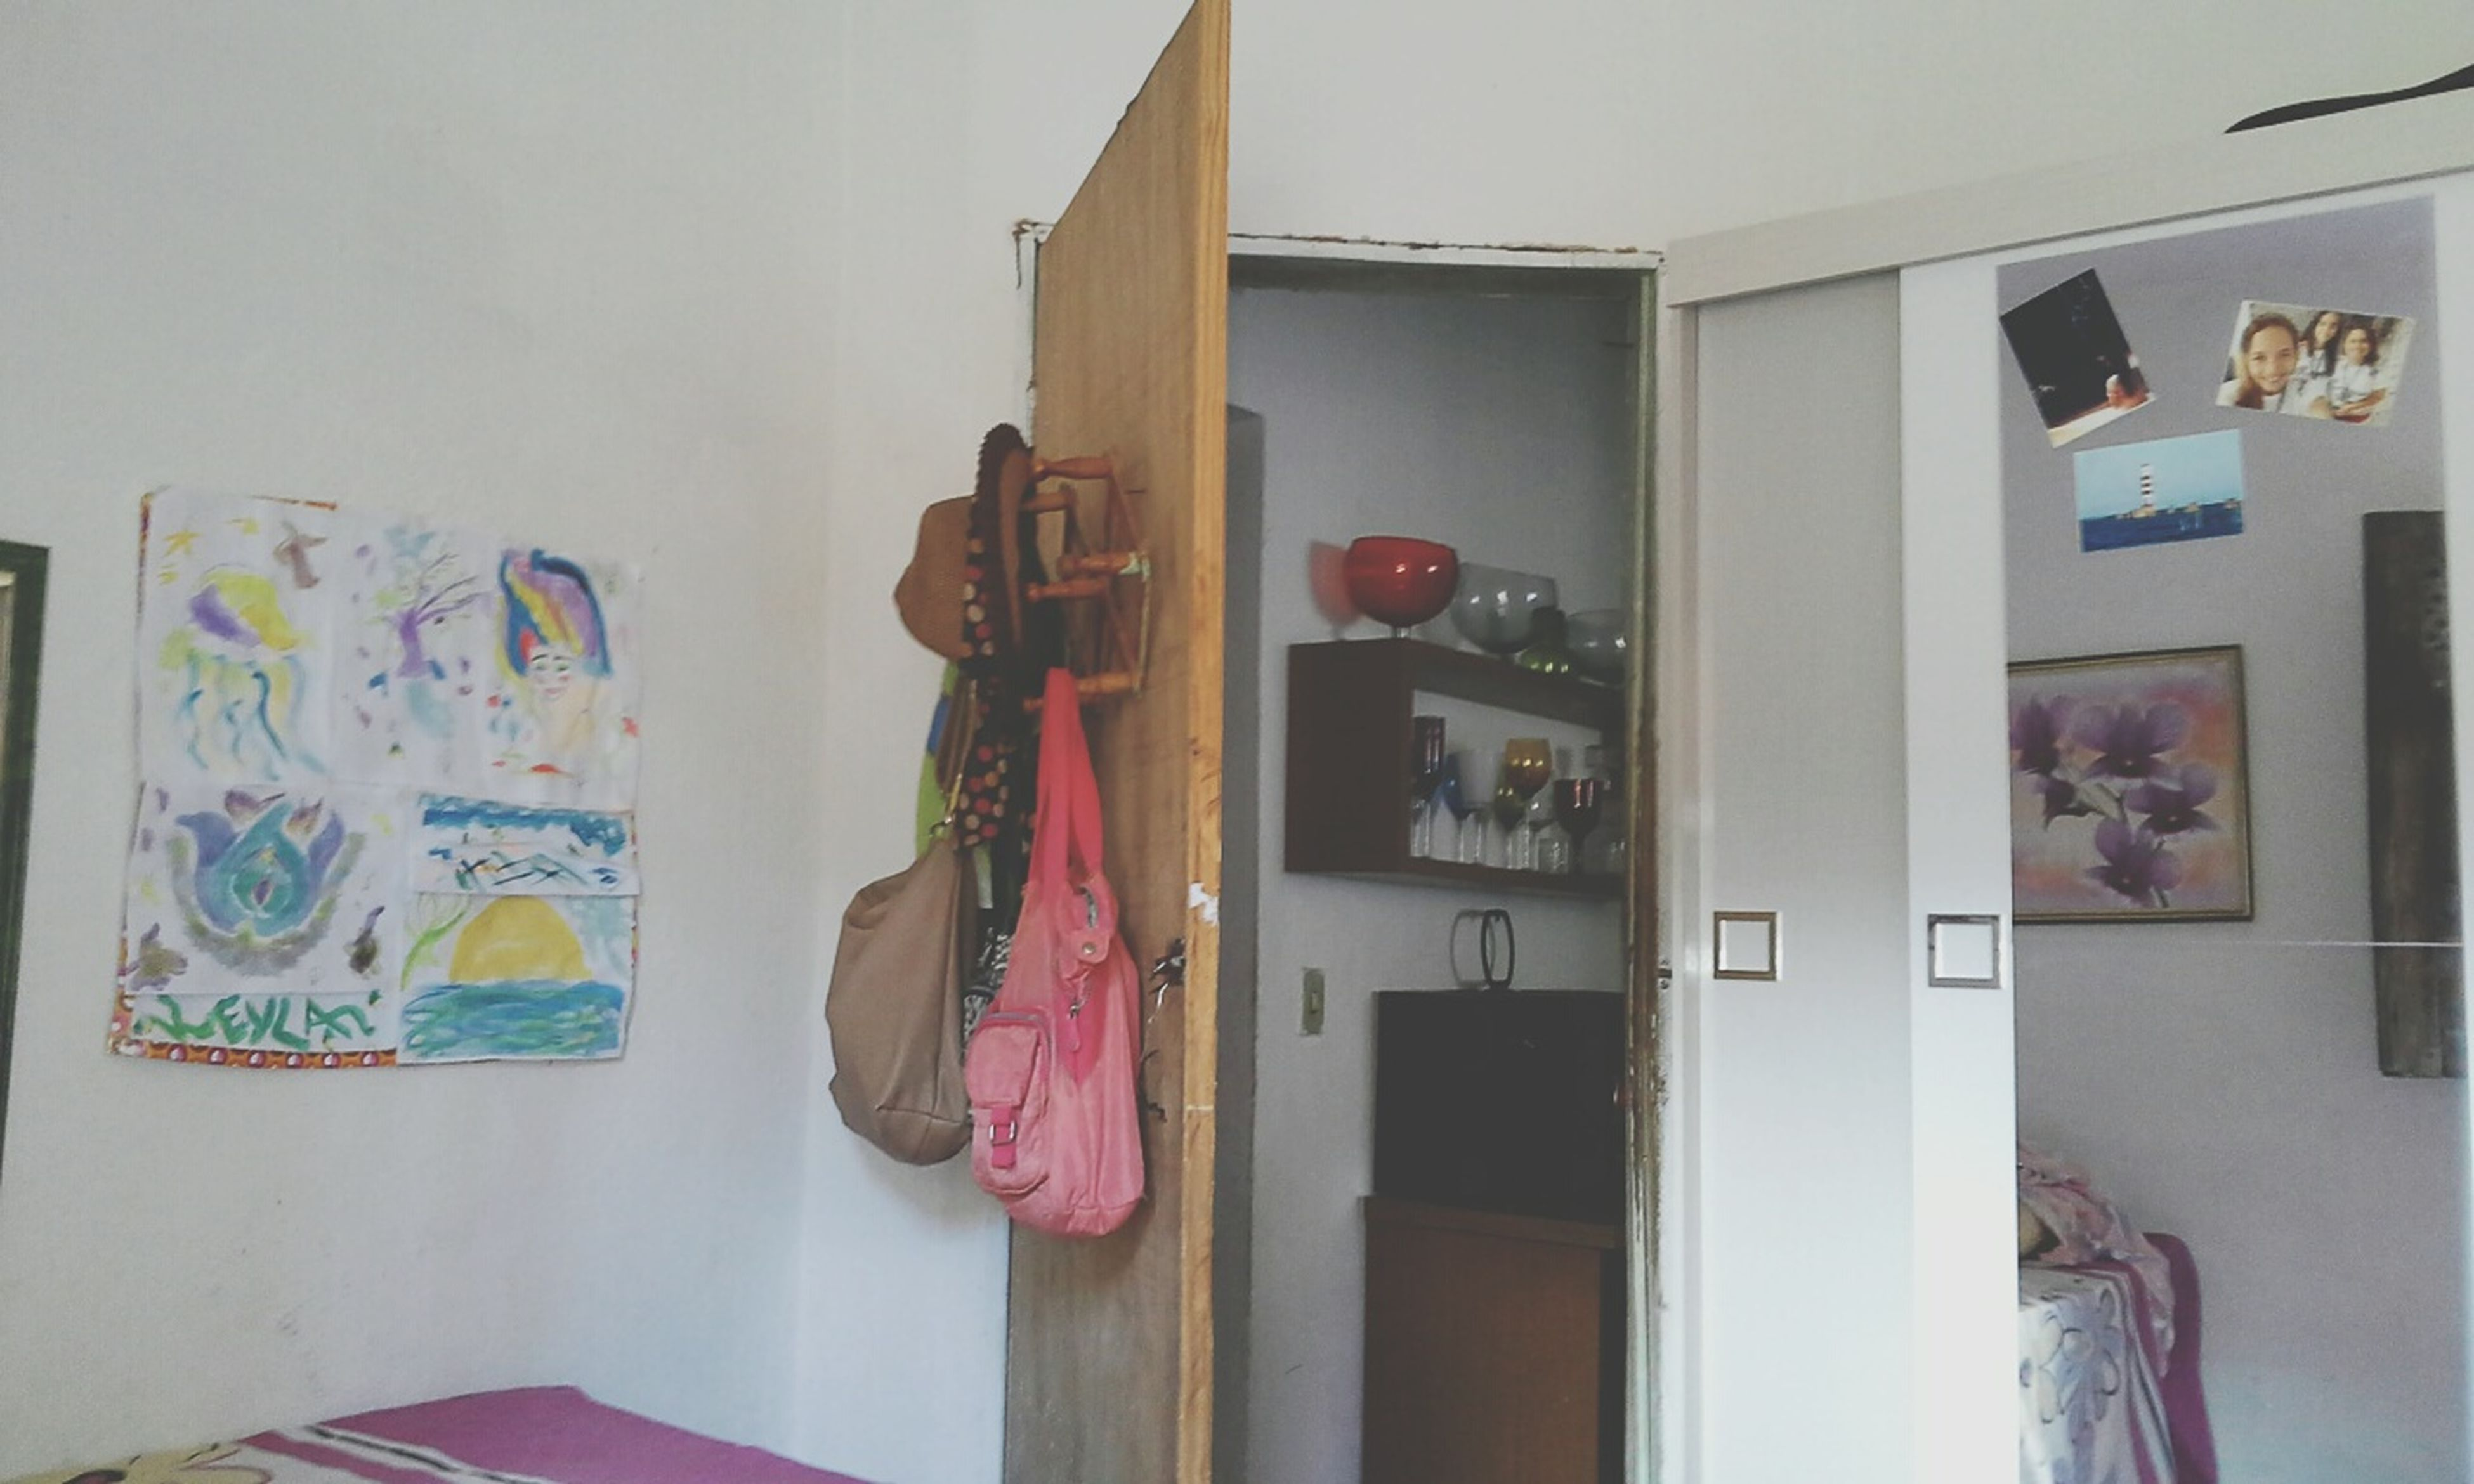 indoors, variation, hanging, wall - building feature, multi colored, art, art and craft, built structure, creativity, architecture, home interior, wall, window, door, store, clothing, human representation, choice, curtain, house